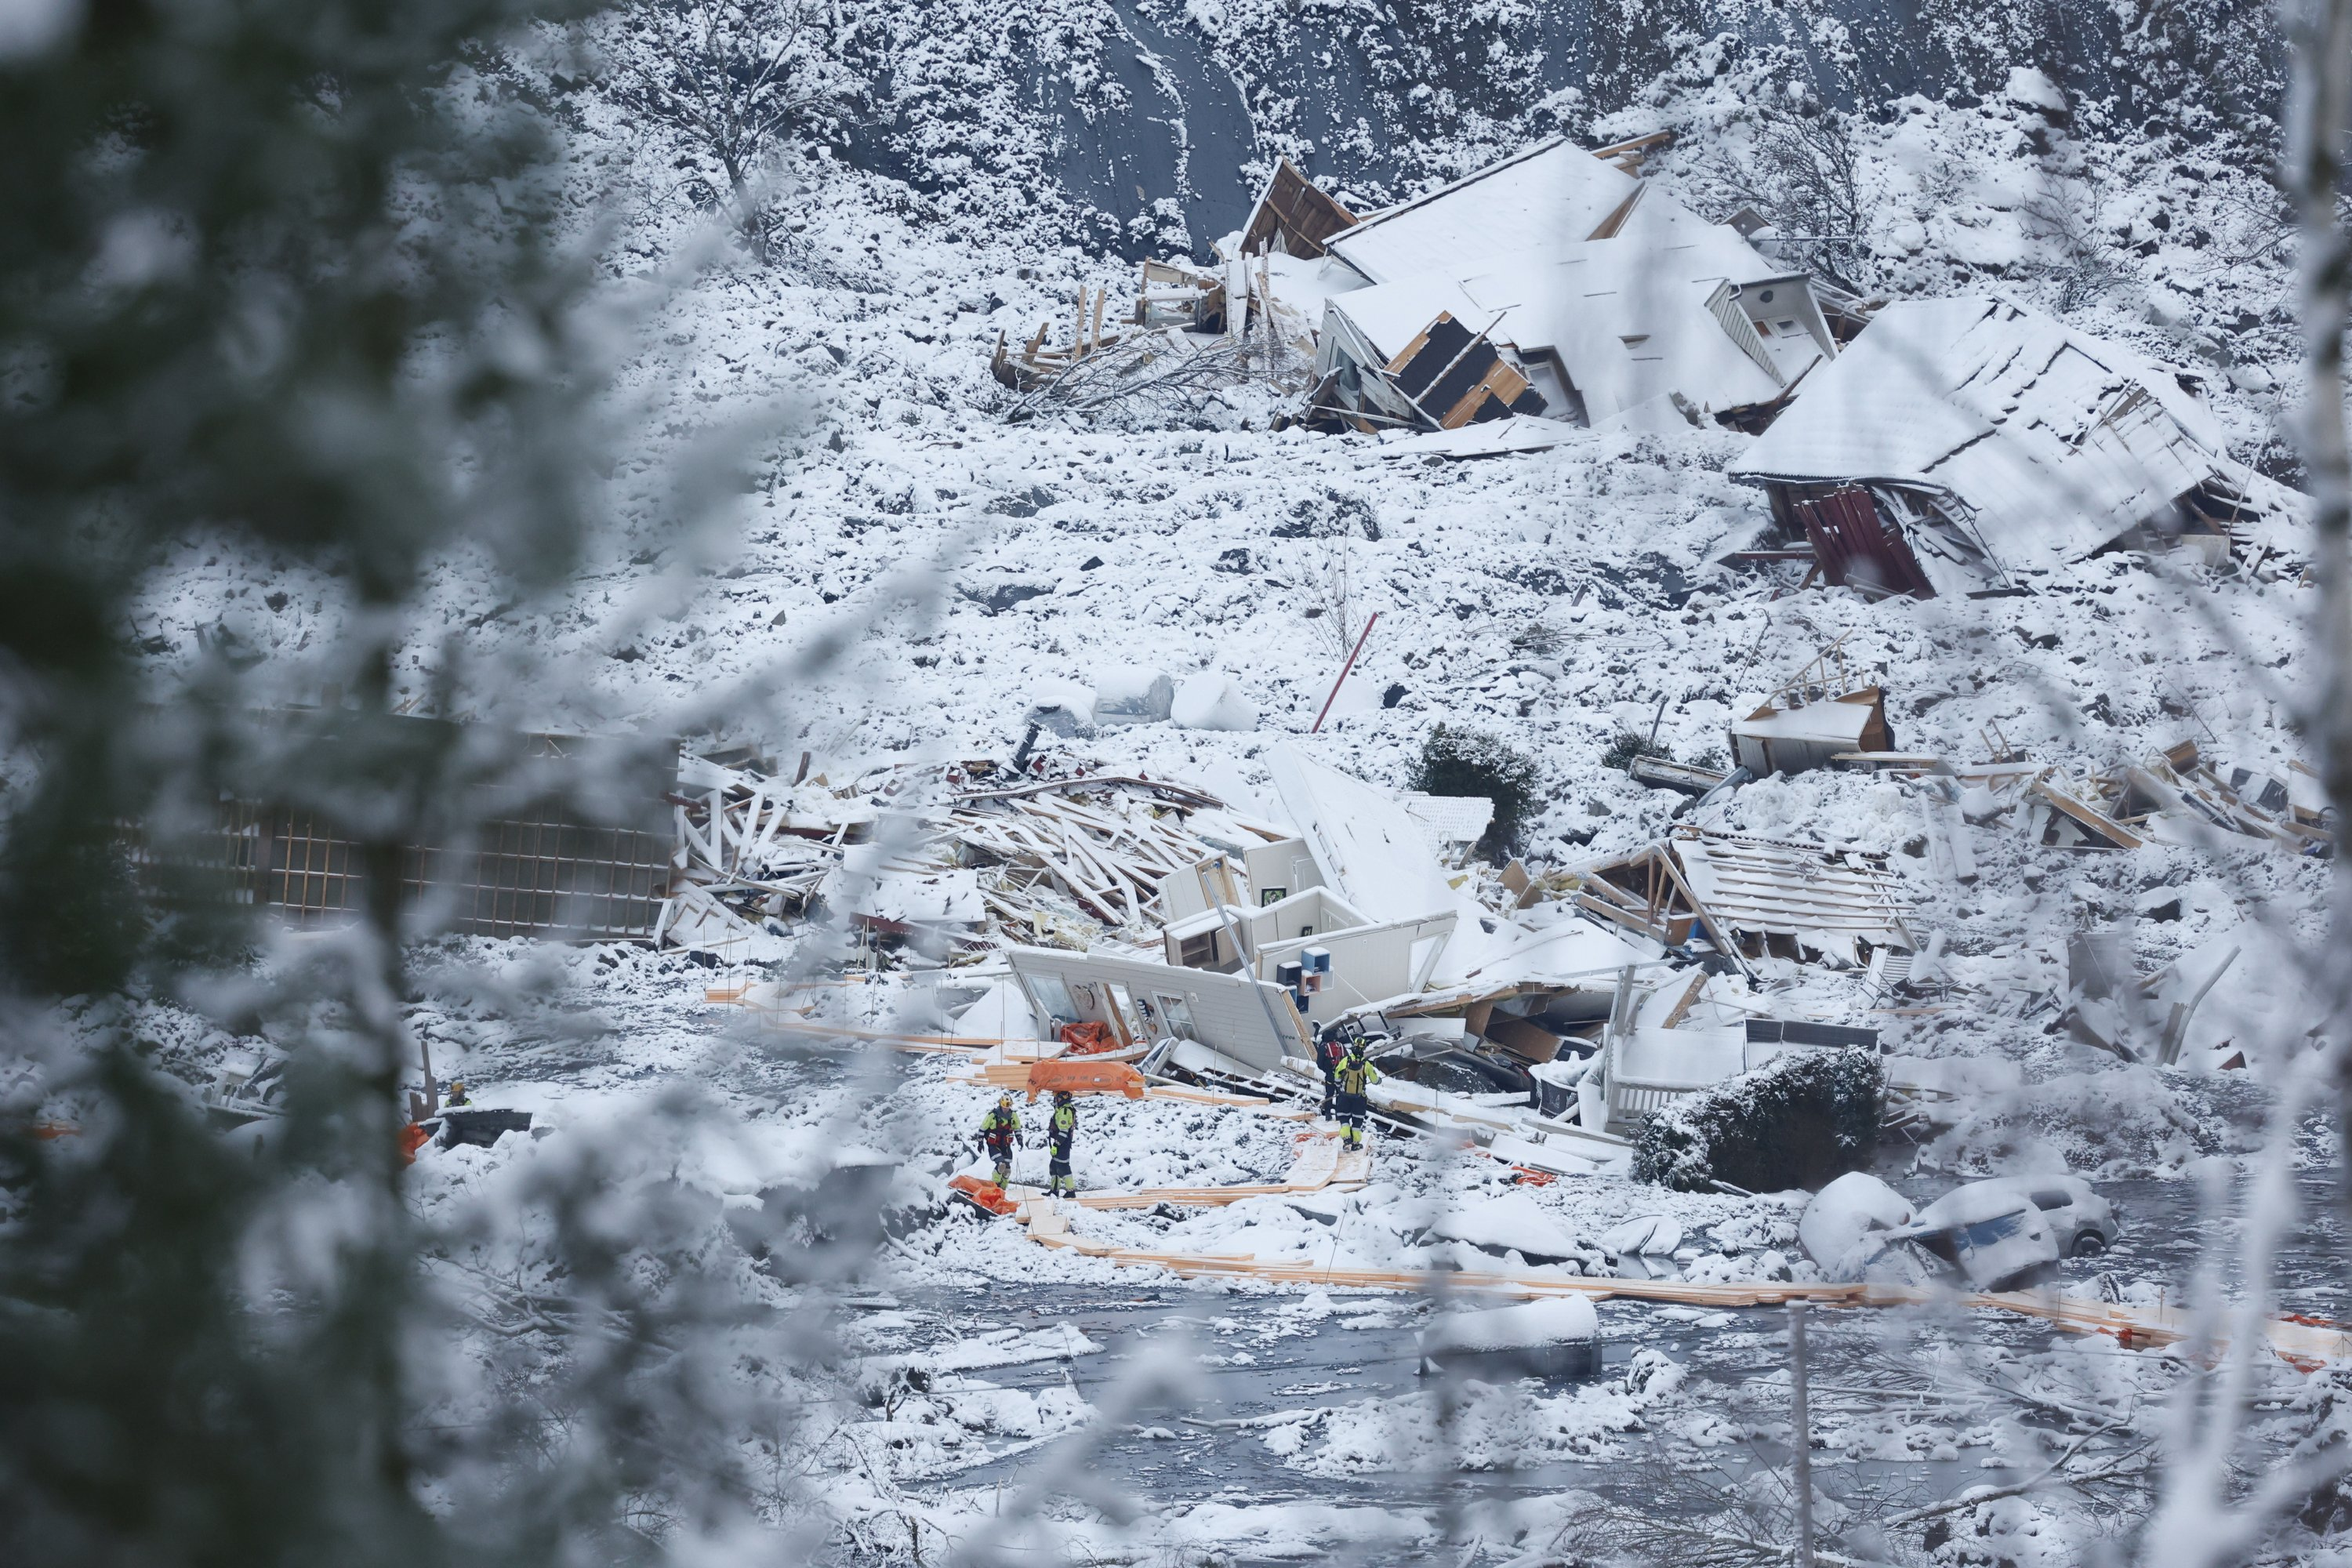 3rd body found after landslide in Norway; 7 still missing – The Associated Press